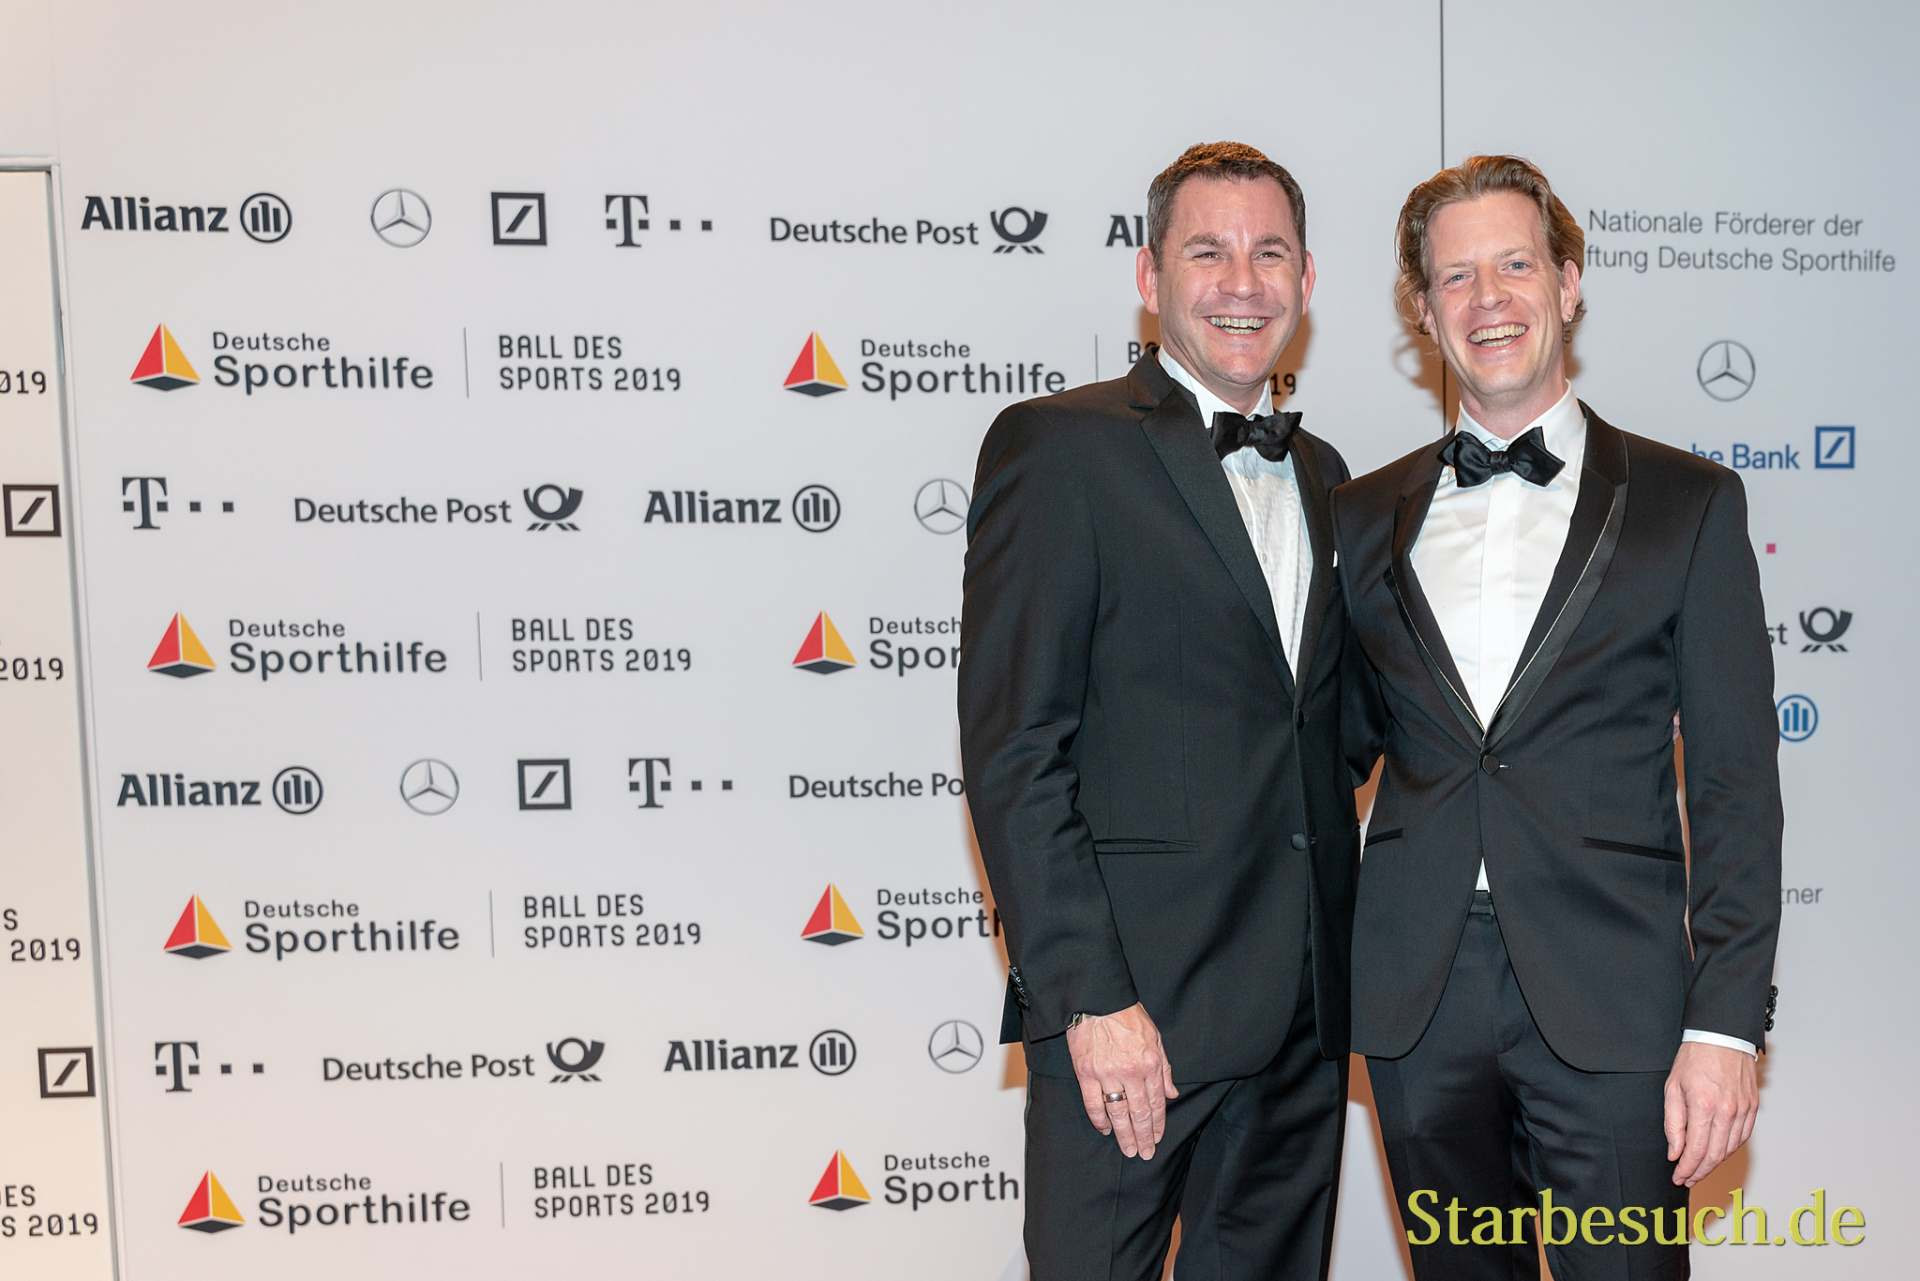 WIESBADEN, Germany - February 2nd, 2019: Sven Gerich and husband at Ball des Sports 2019